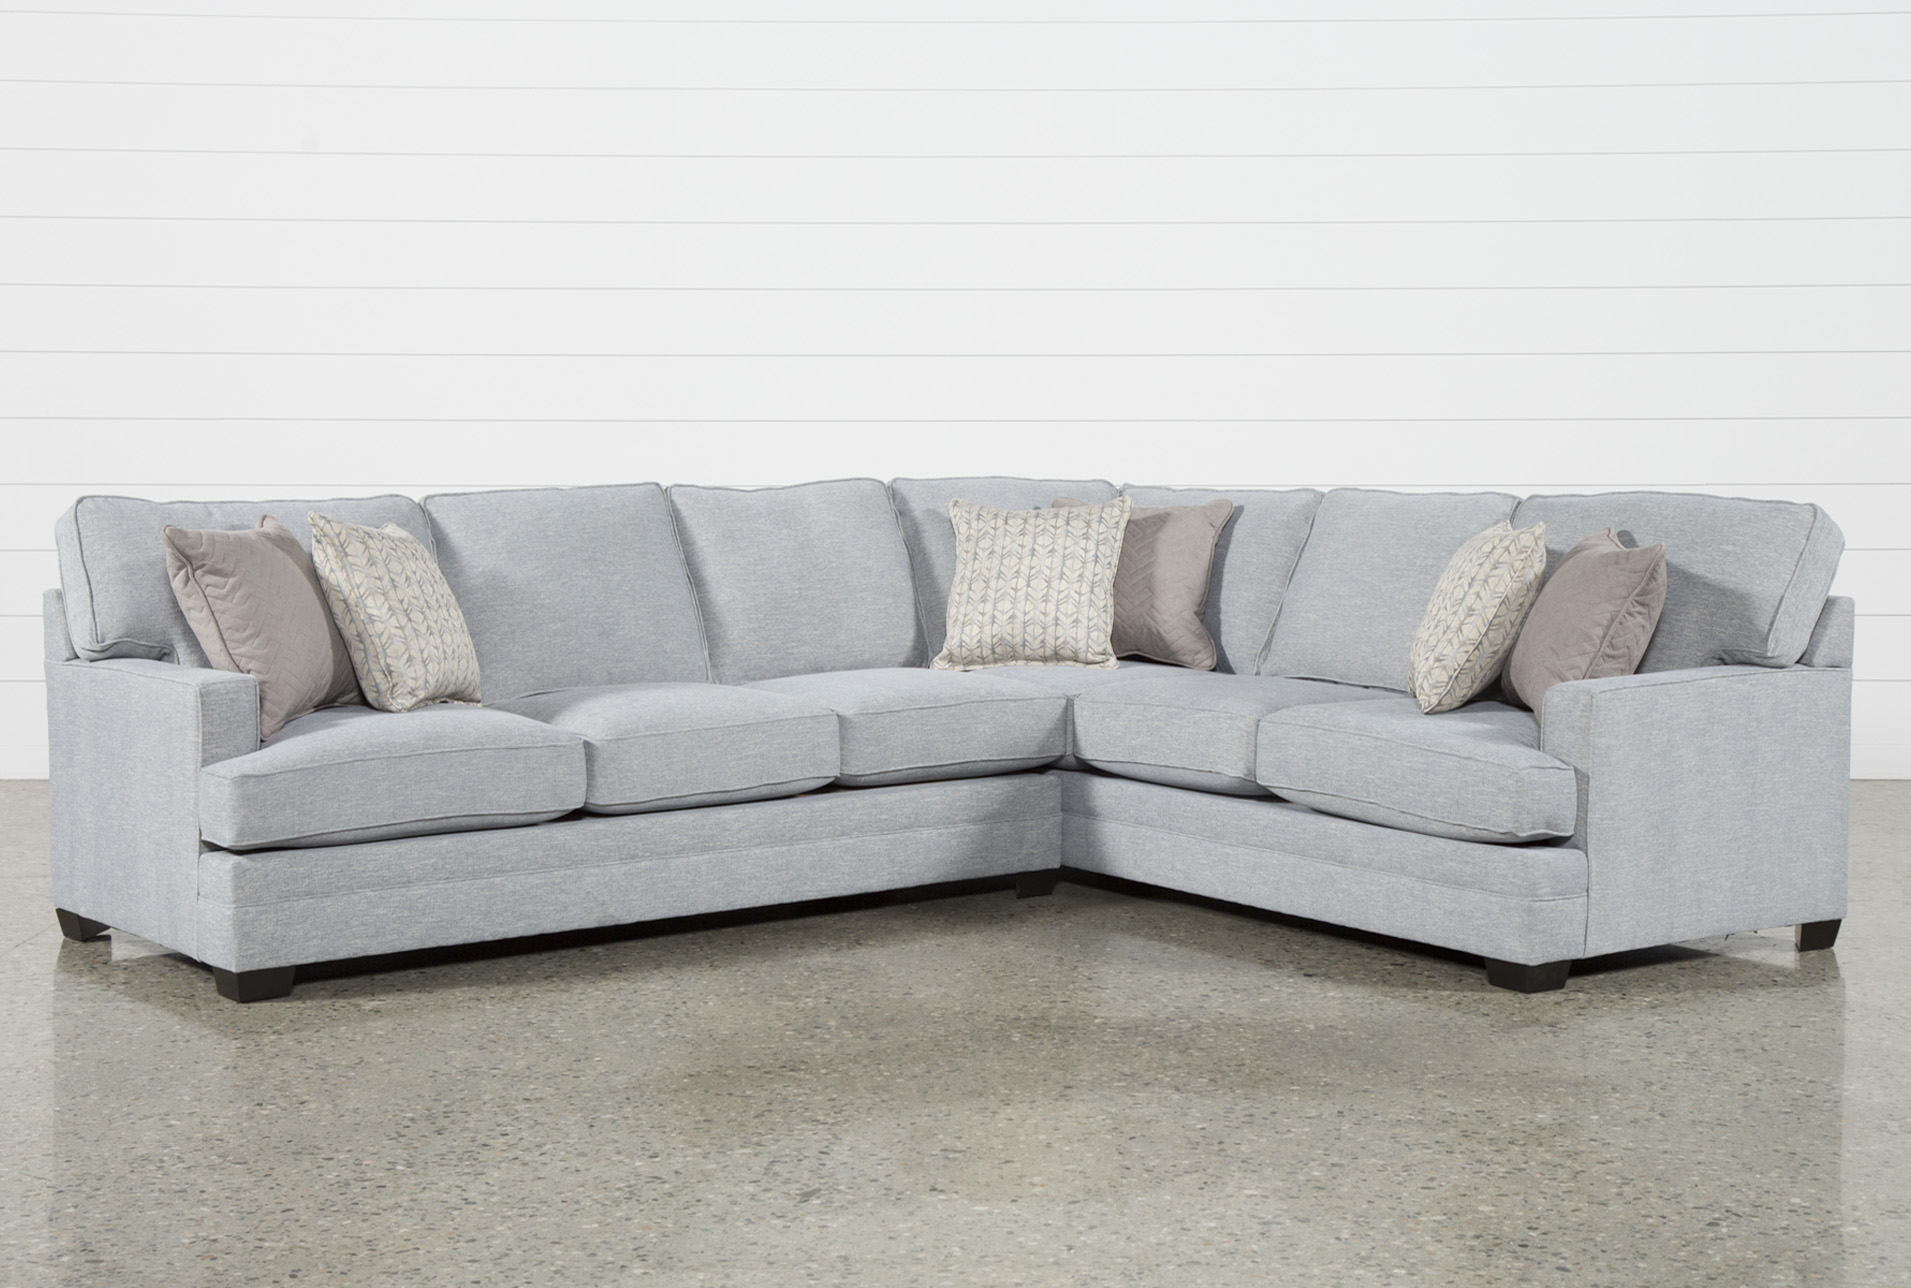 josephine 2 piece sectional w/laf sofa (qty: 1) has been successfully added  to your cart. K8APRAN1